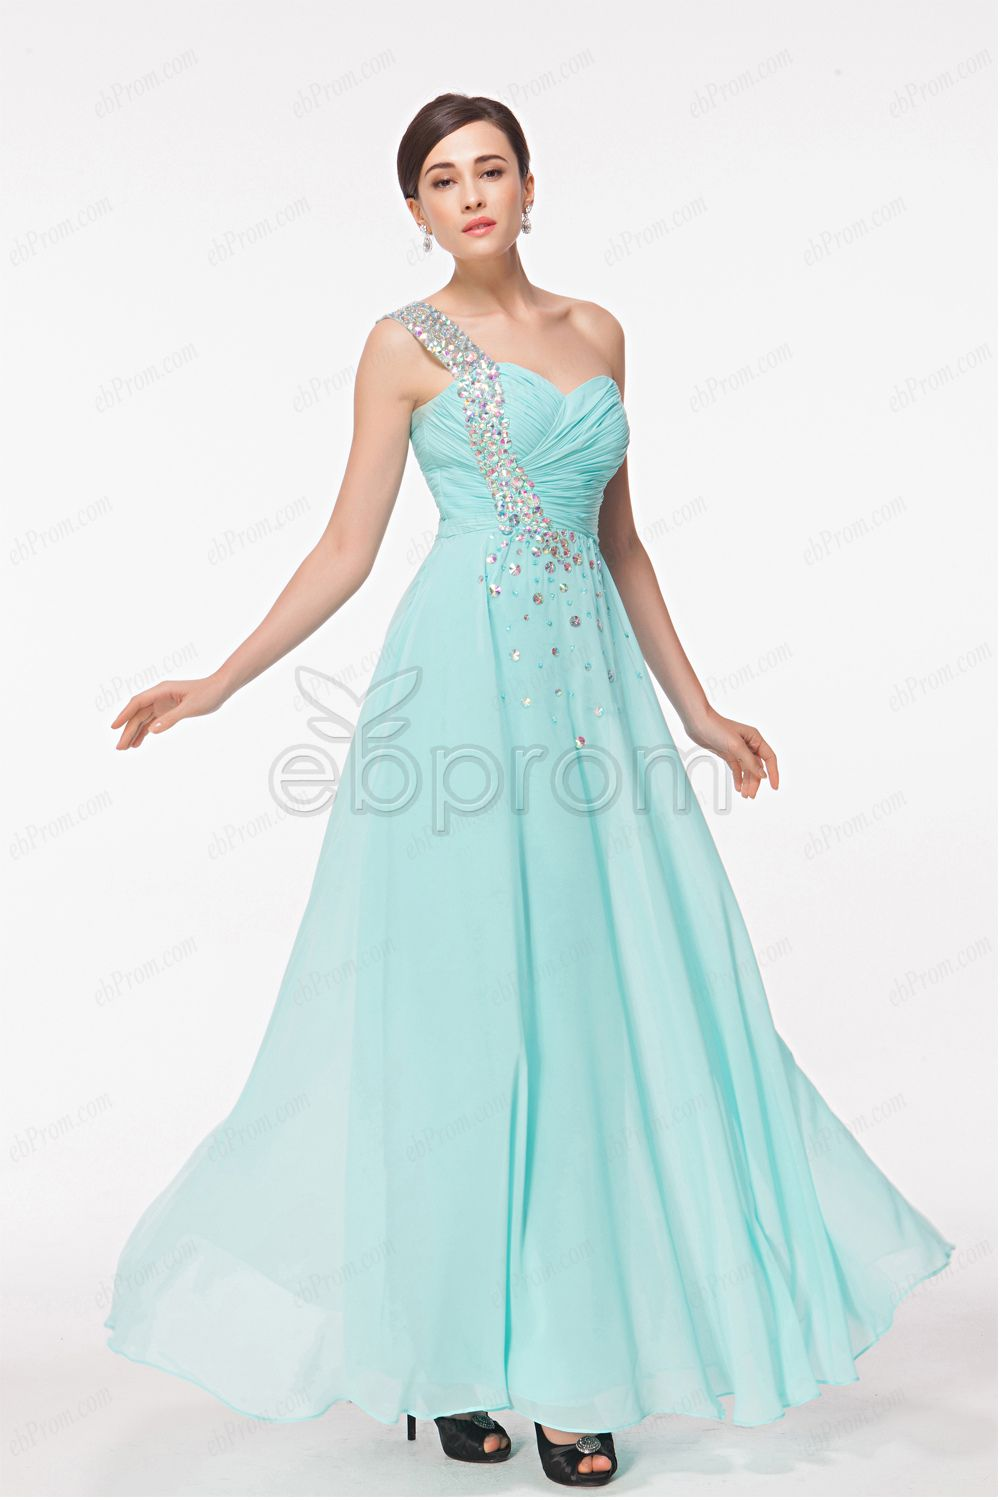 Light blue crystal sparkly prom dresses long | Sparkly prom ...